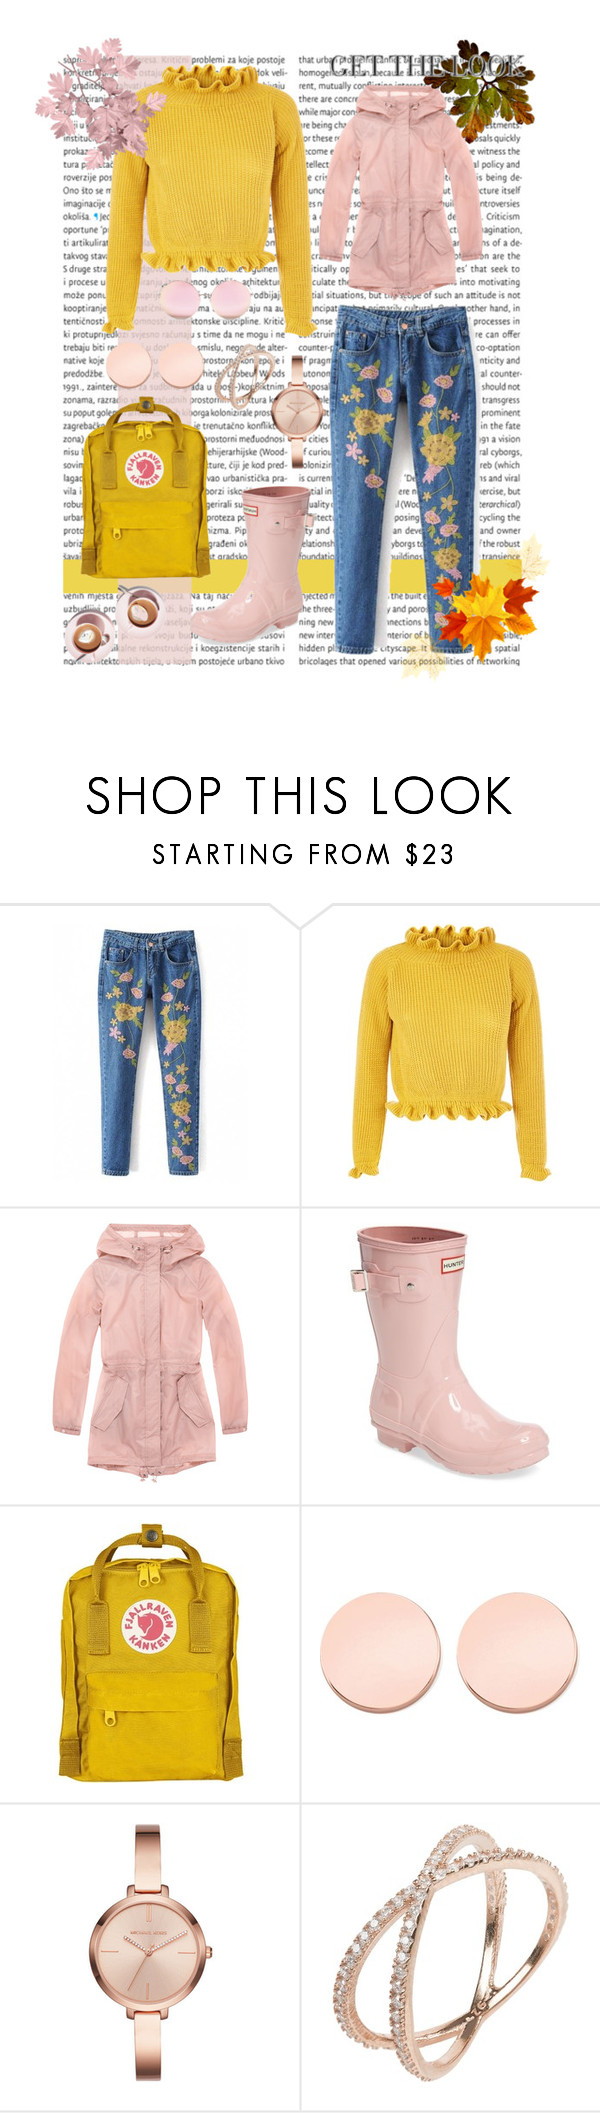 """""""it's a fall look"""" by eboony800 ❤ liked on Polyvore featuring Marc New York, Hunter, Fjällräven, Thomas Sabo, Michael Kors and Matthew Williamson"""